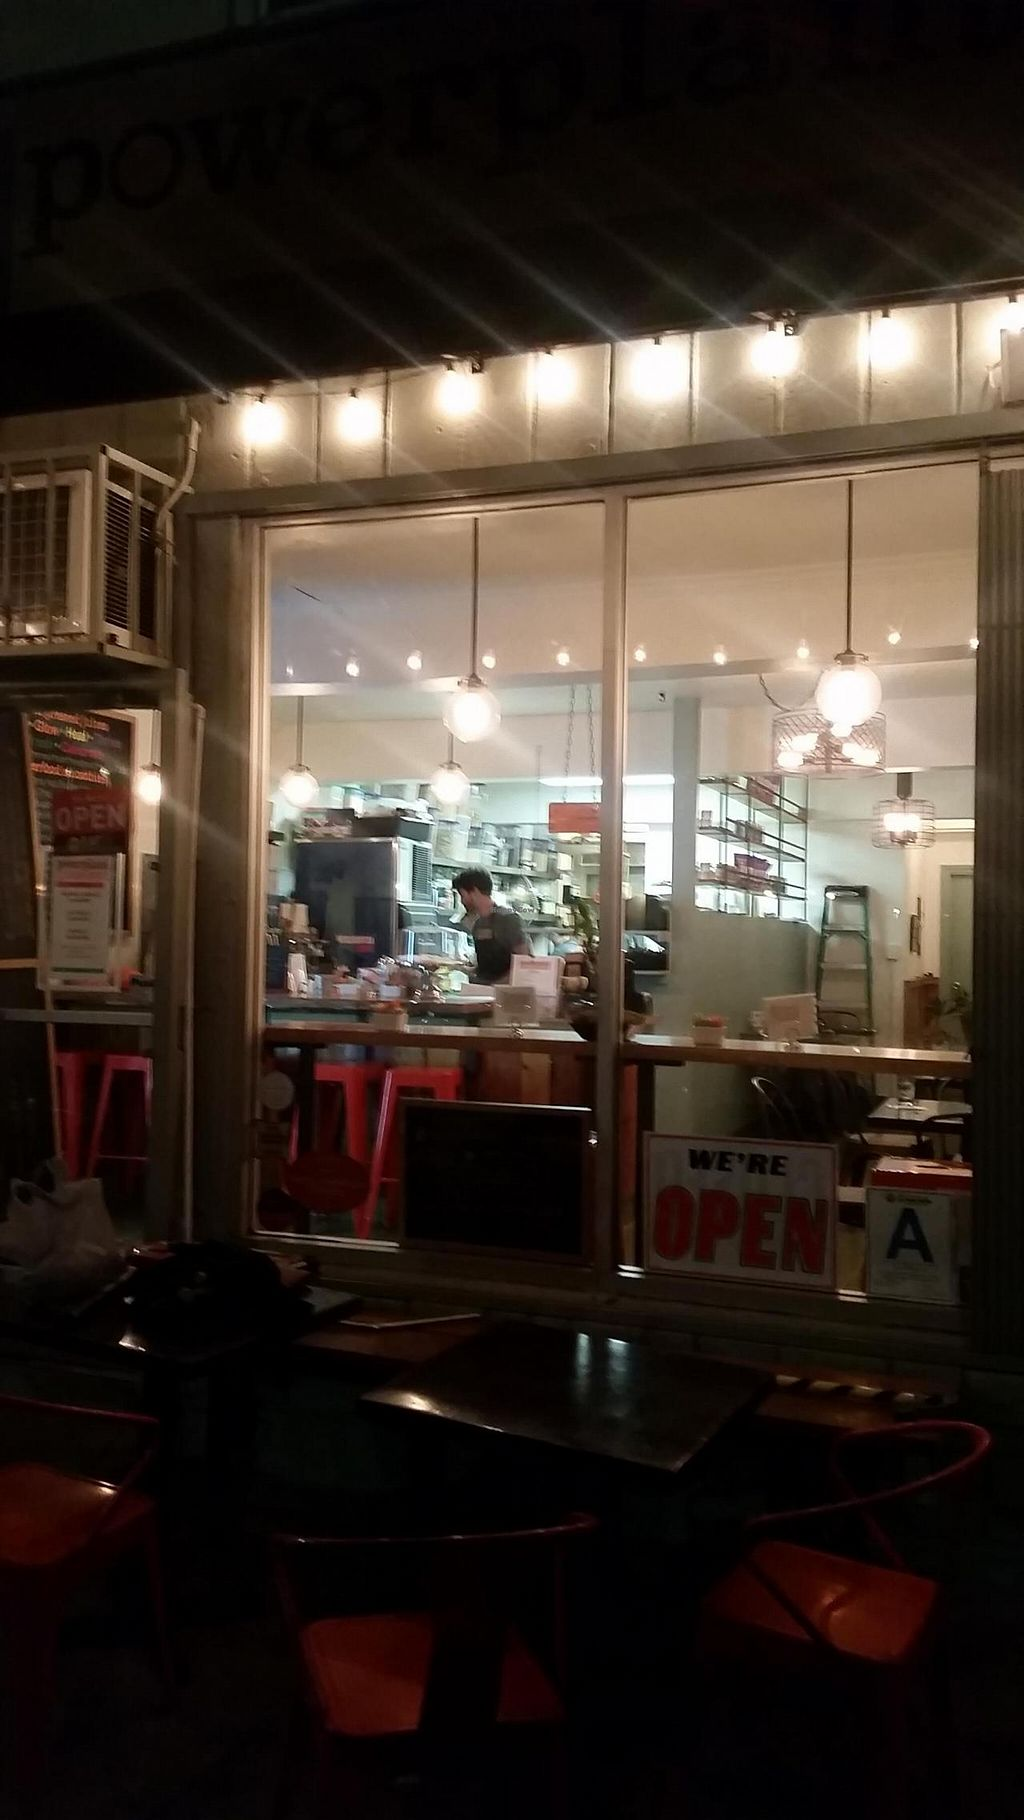 """Photo of Powerplant Superfood Cafe  by <a href=""""/members/profile/kenvegan"""">kenvegan</a> <br/>Powerplant Superfood Cafe at night <br/> November 24, 2014  - <a href='/contact/abuse/image/48173/86396'>Report</a>"""